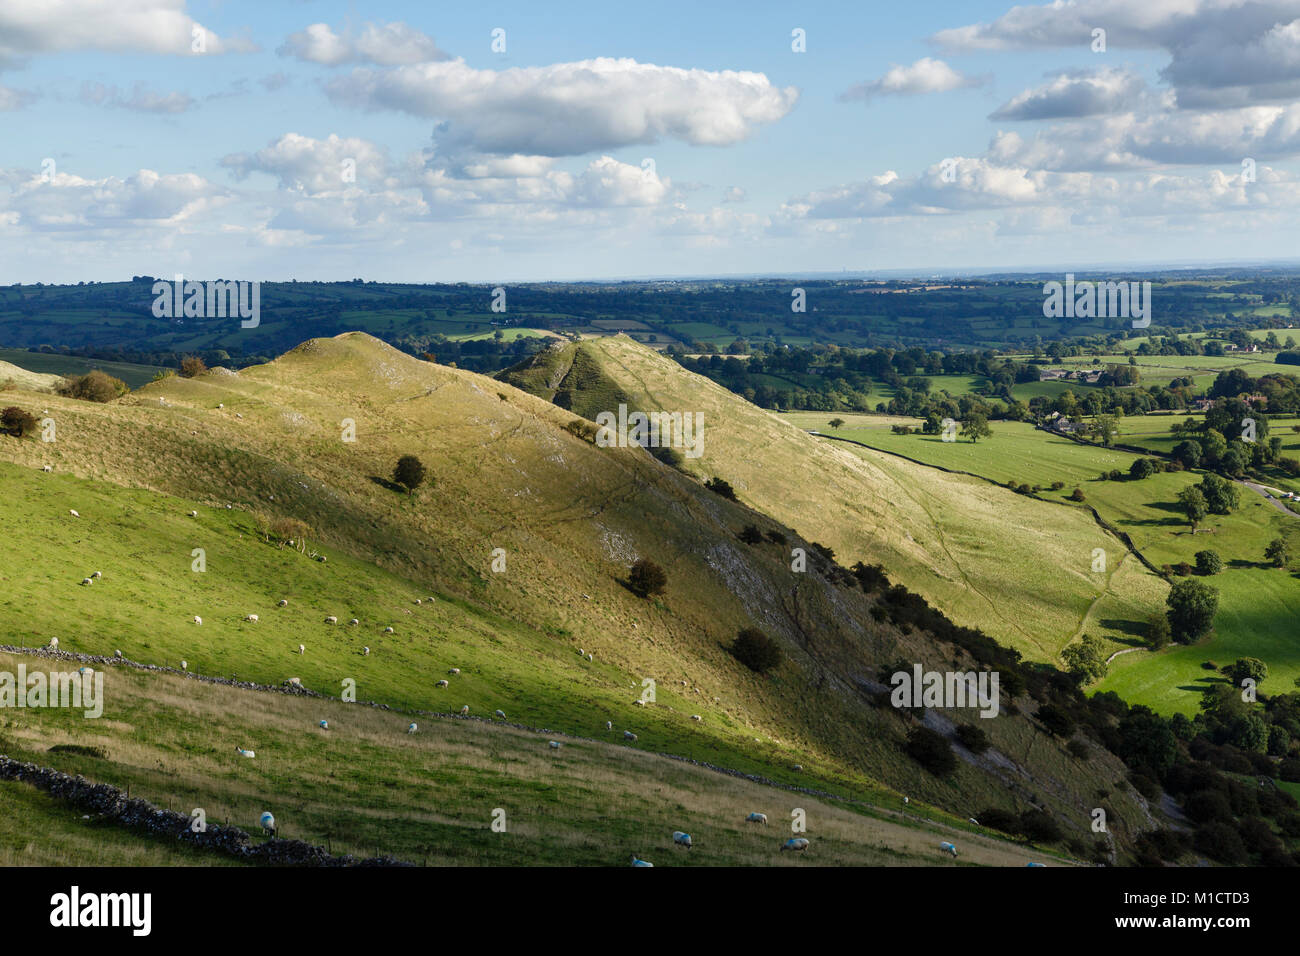 View looking from Bunster Hill towards Thorpe Cloud and Dovedale, Peak District National Park, Staffordshire - Stock Image